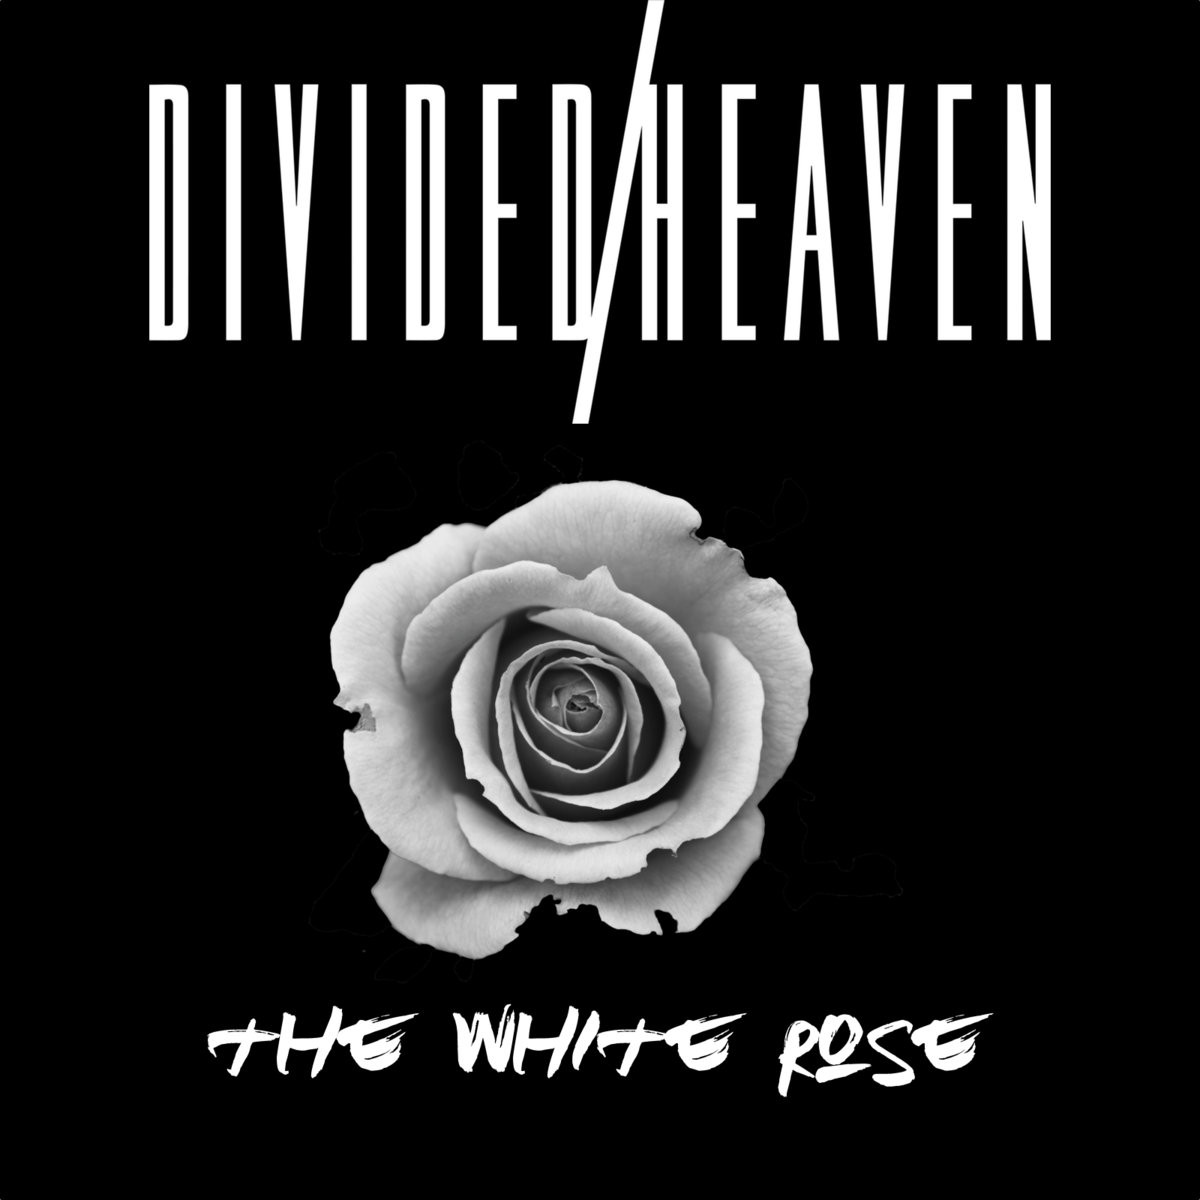 THE WHITE ROSE - Released July 20th, 2017This Is LA Records